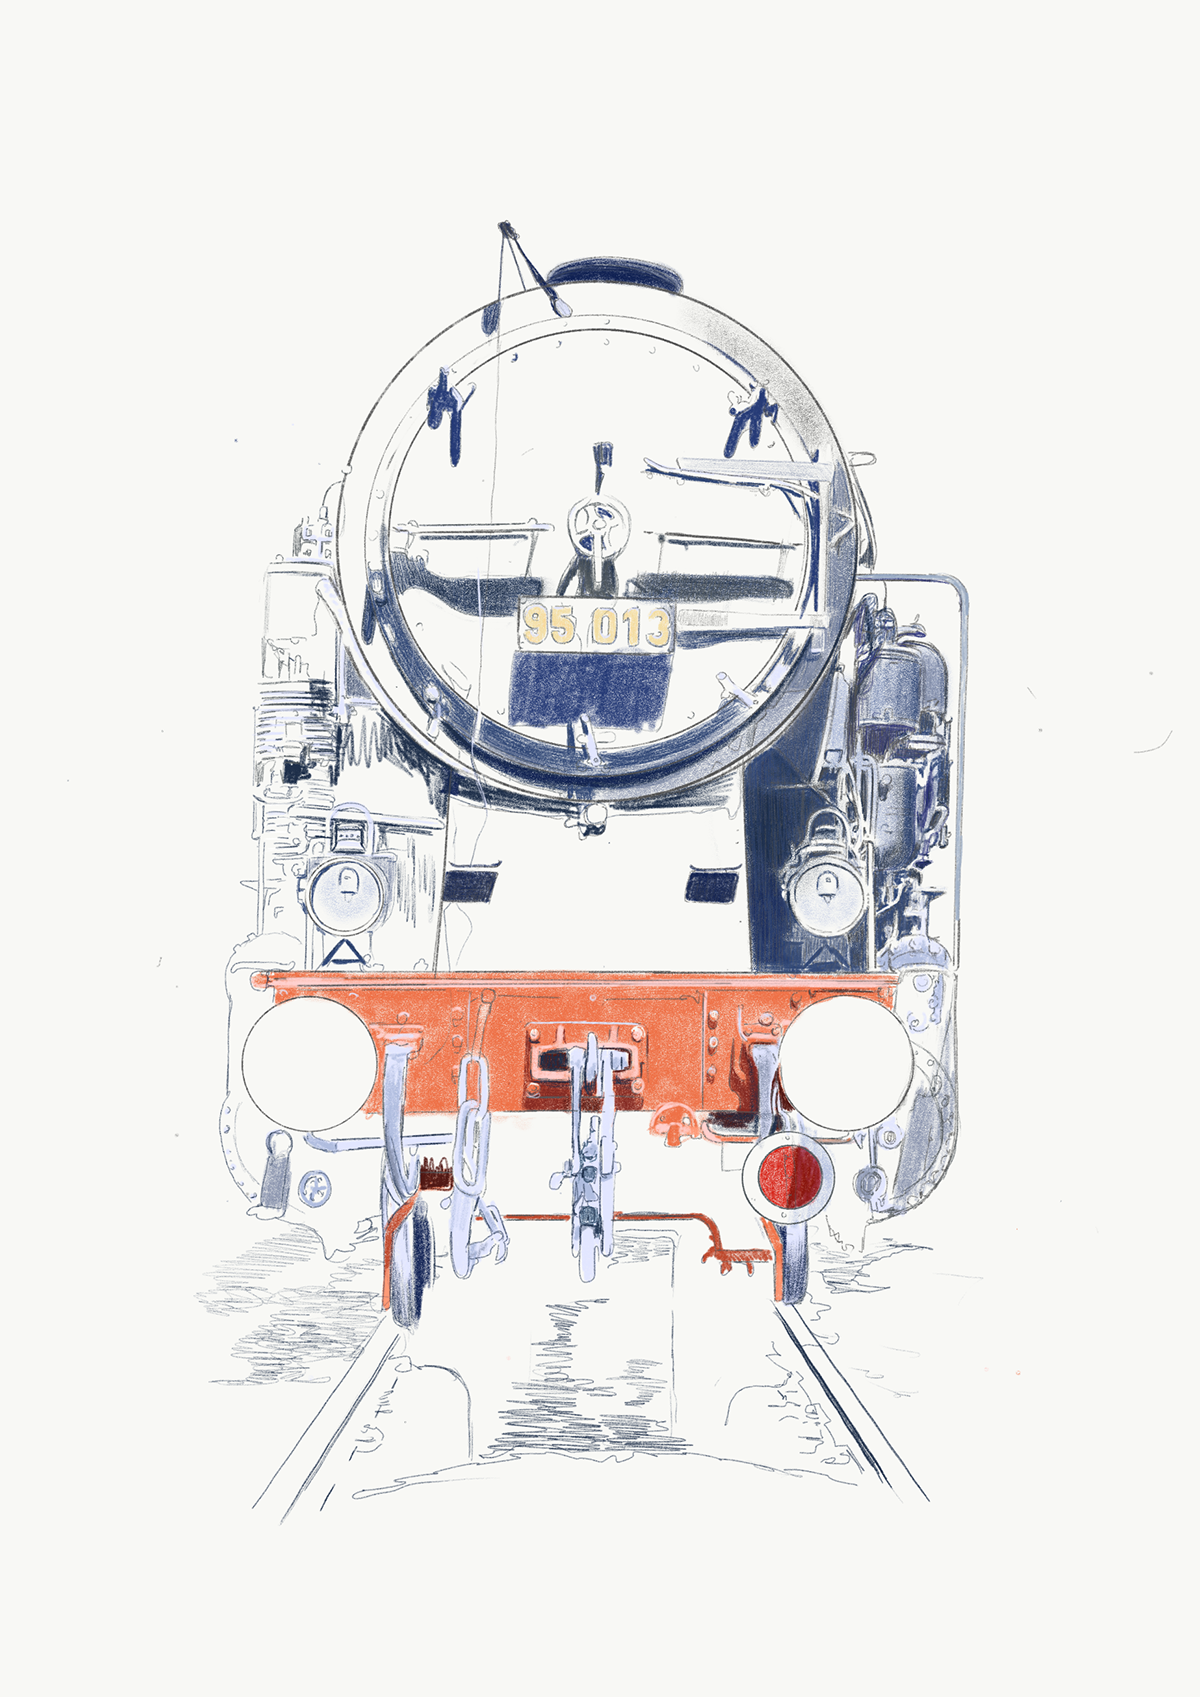 Portrait of German Steam Engine Class 95 on Behance